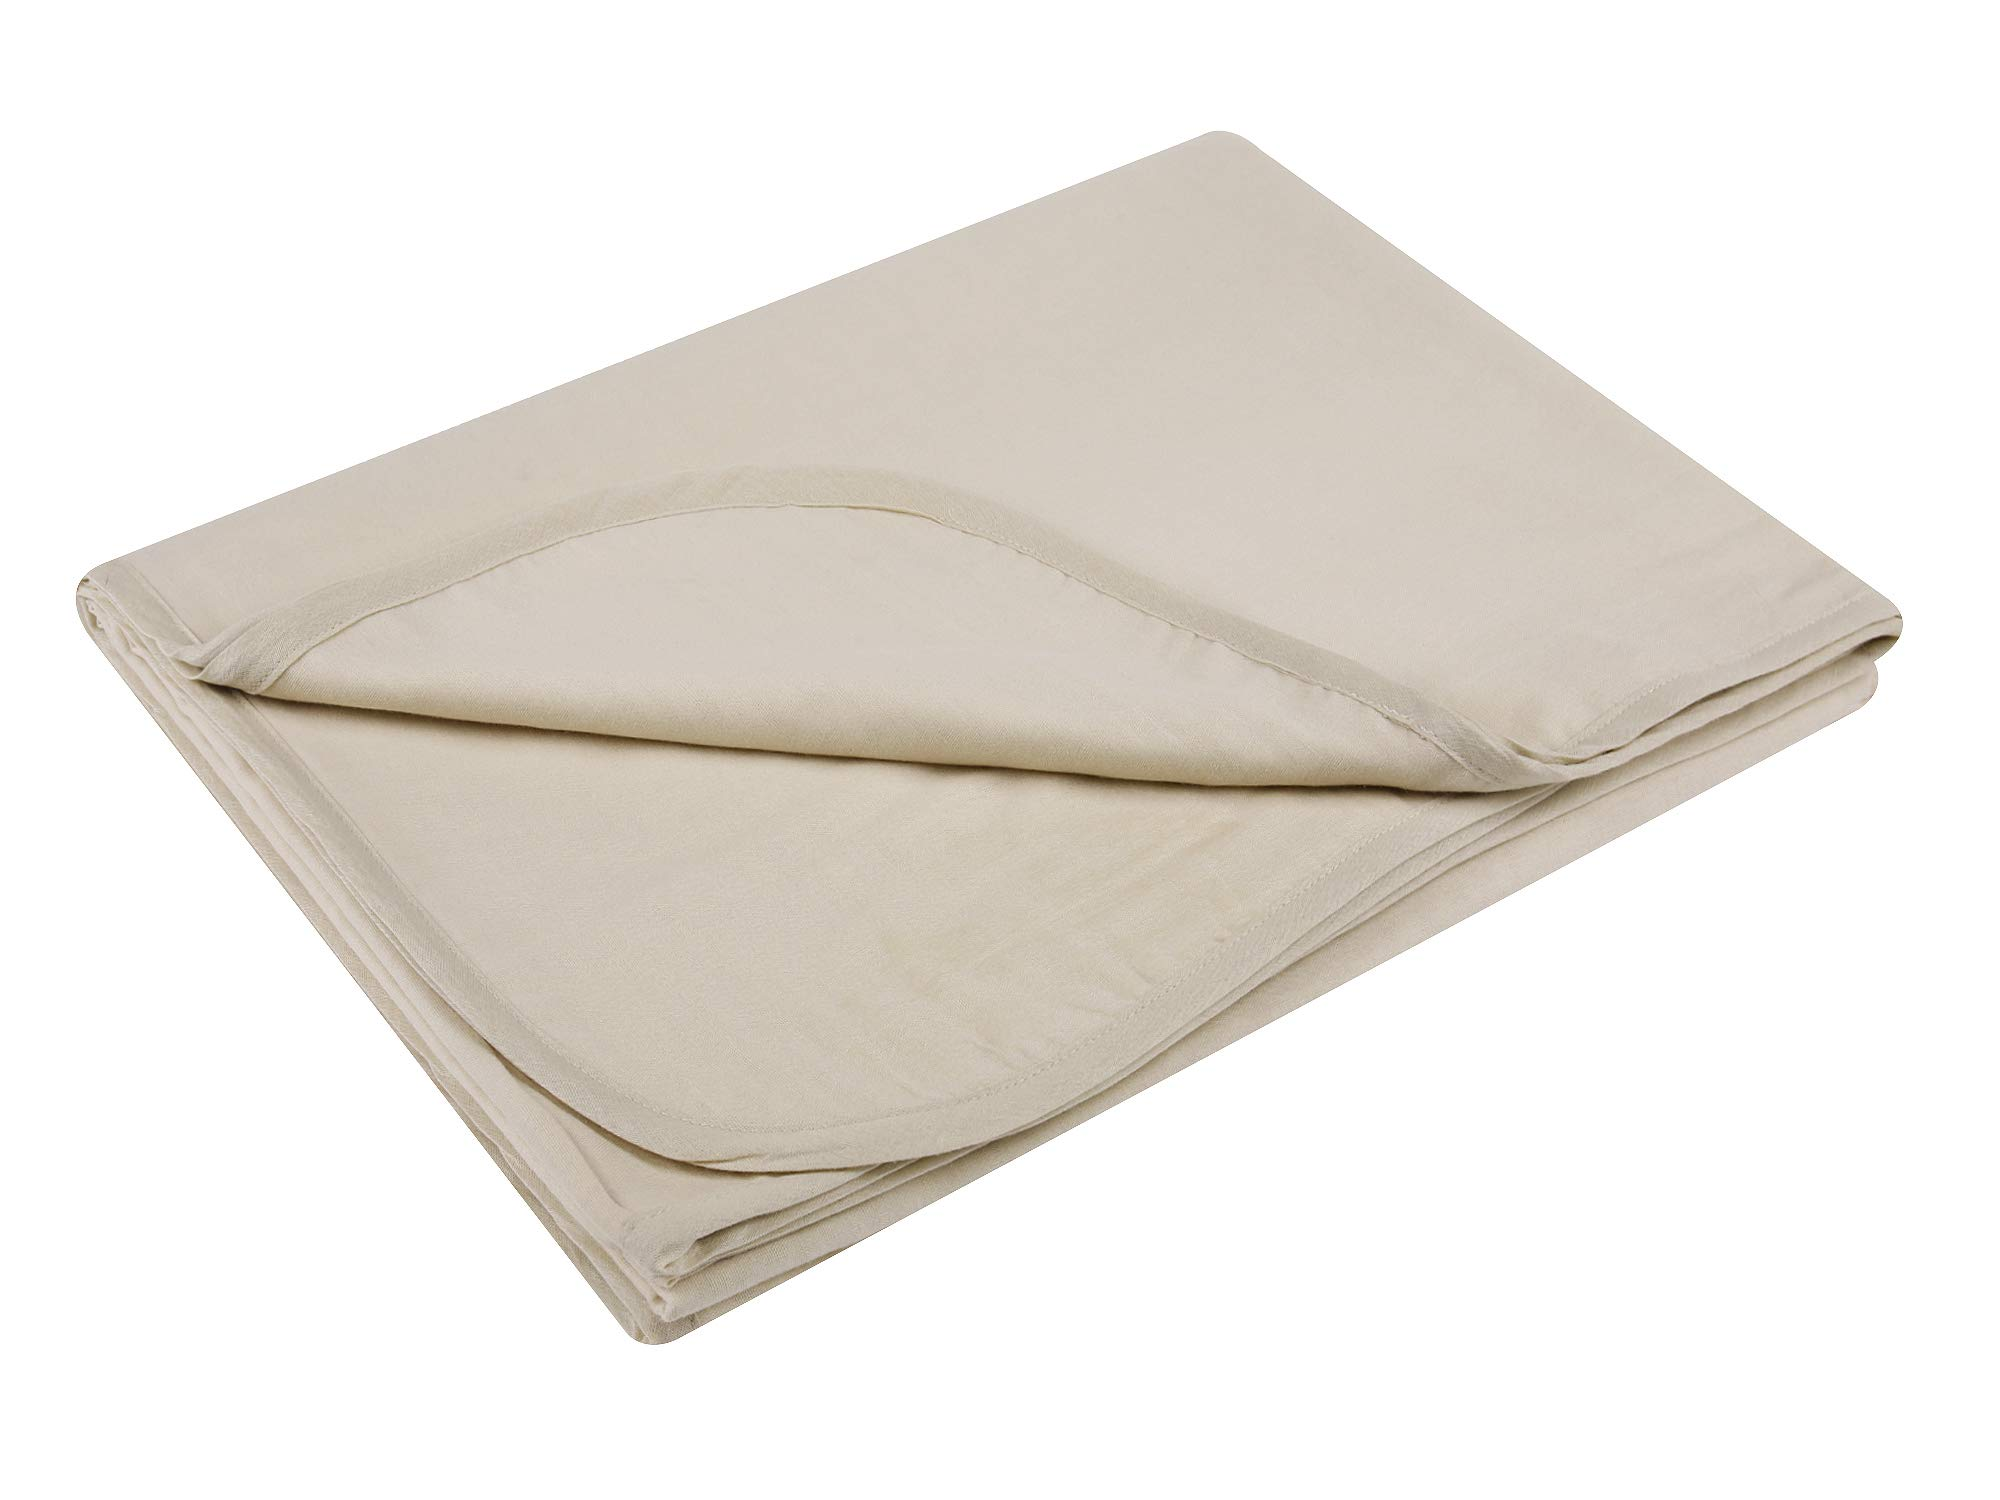 GYS Ultra Soft and Lightweight 100% Organic Cotton Hospital/Home Blanket (Twin Size, 30 Ounce, 58.3''x82.7''), Summer Quilt with 5 Layers of Organic Cotton, Flaxen